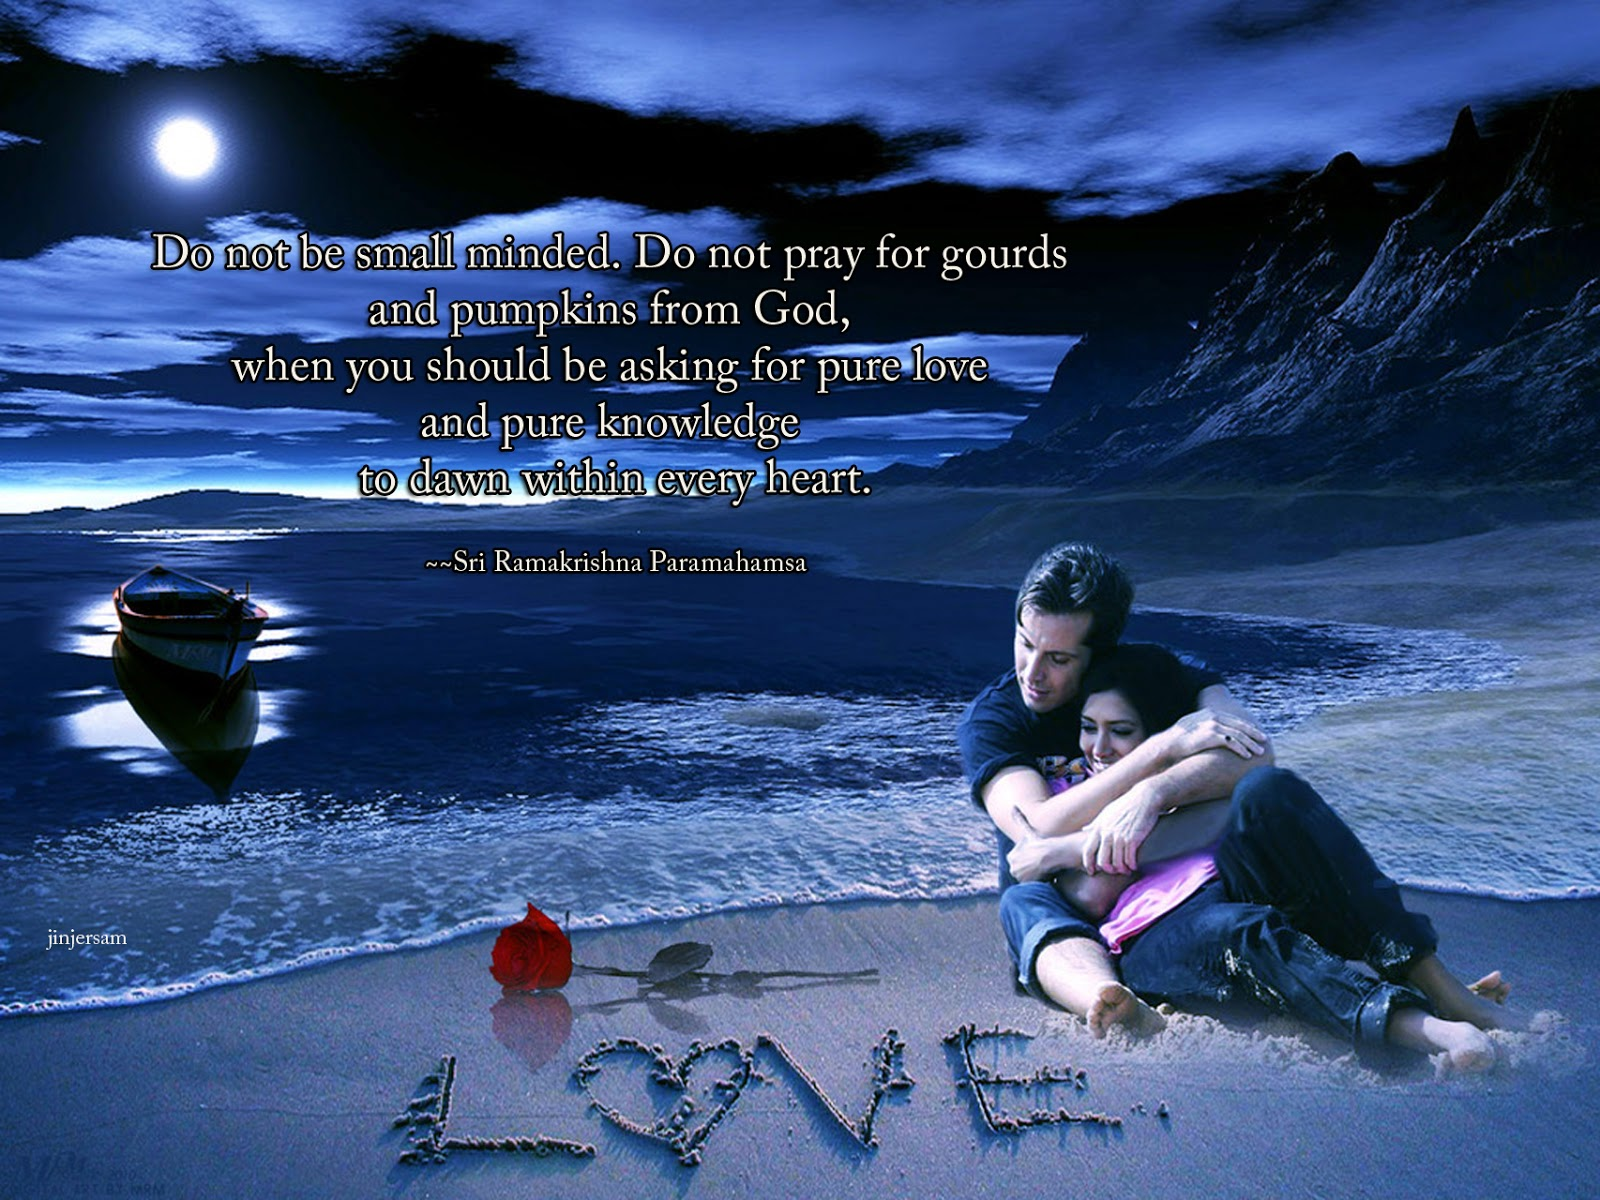 Wallpaper download love and friendship - Wallpaper Download Love And Friendship 89